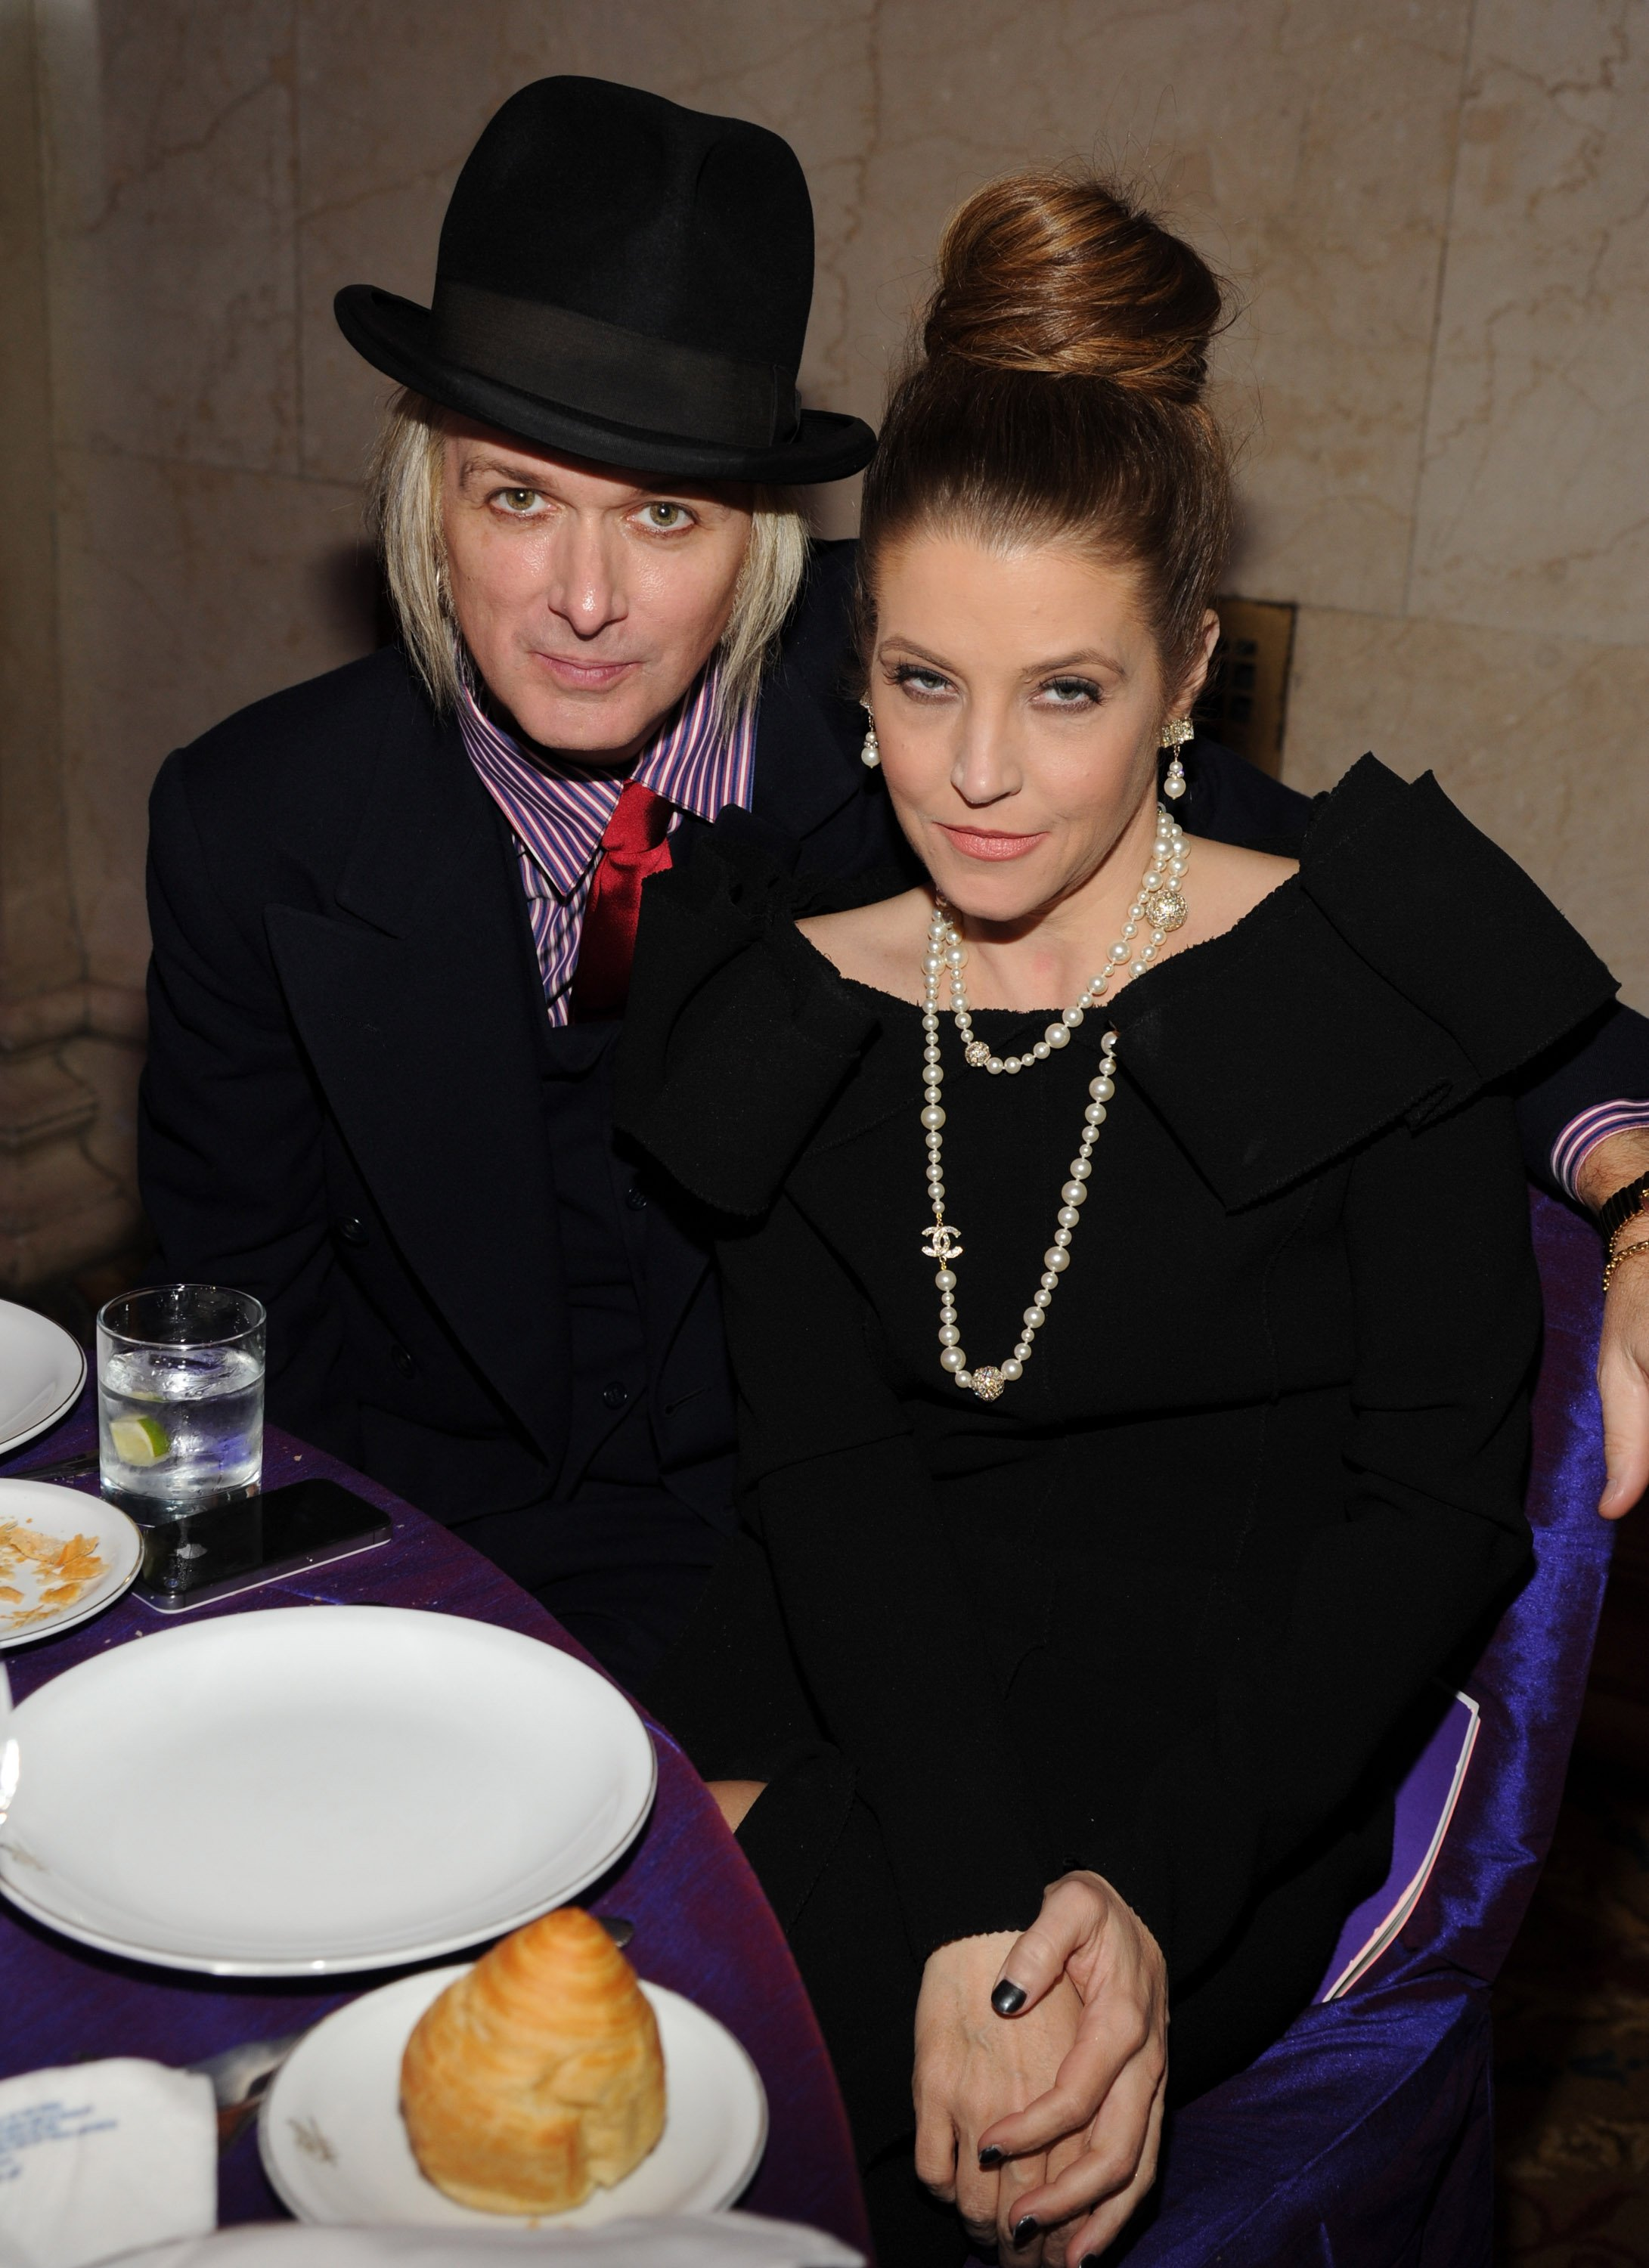 Michael Lockwood und Lisa Marie Presley, 2013 | Quelle: Getty Images